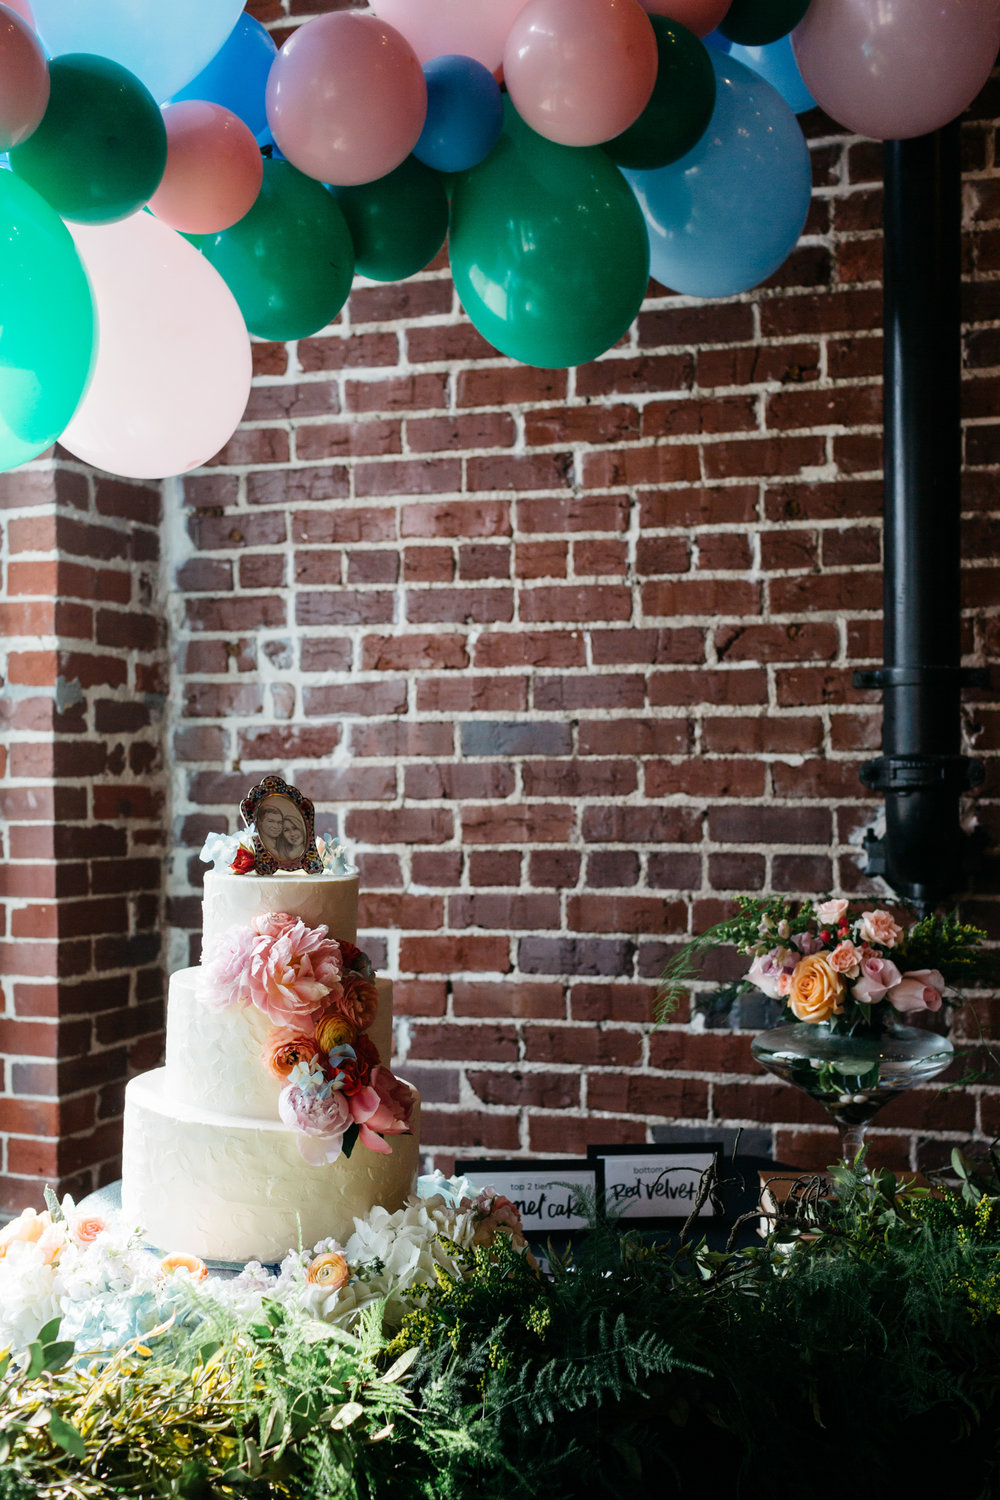 Standard Downtown Knoxville Wedding Venue Central Avenue Happy Holler Exposed Brick Balloons Magpies Cakes